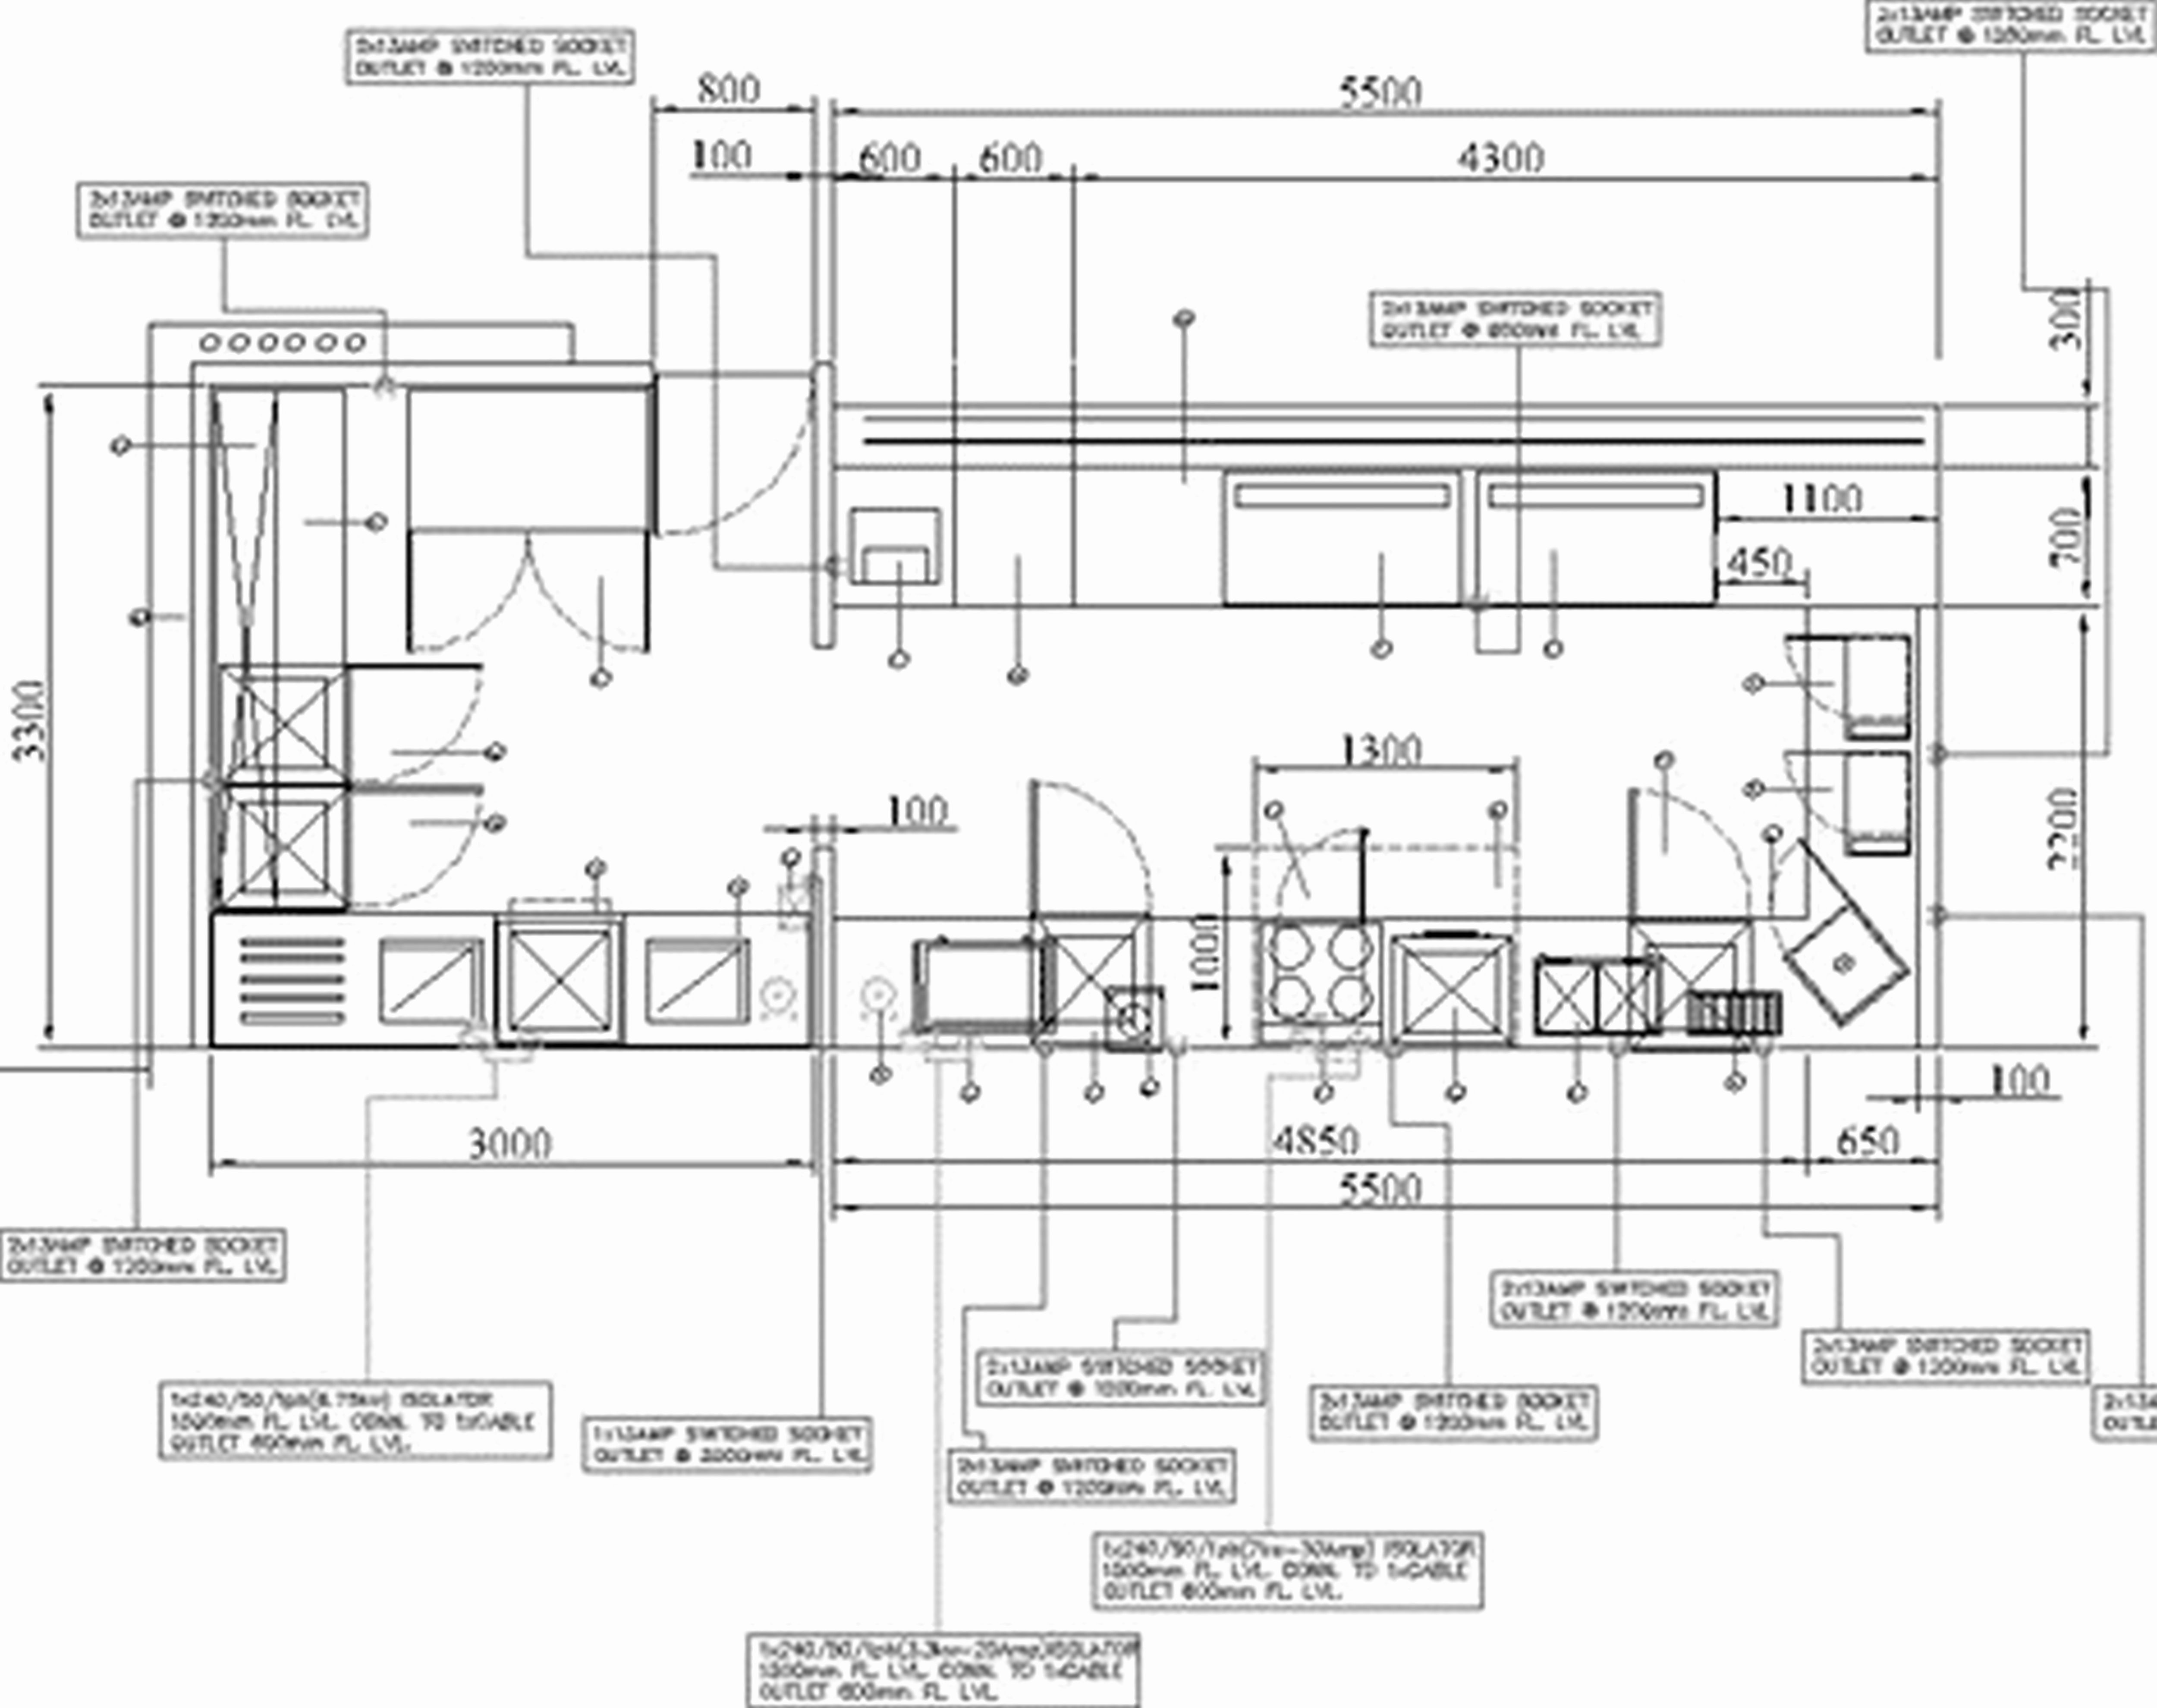 small resolution of restaurant floor plans with dimensions kitchen commercial kitchen design layouts modern floor plan